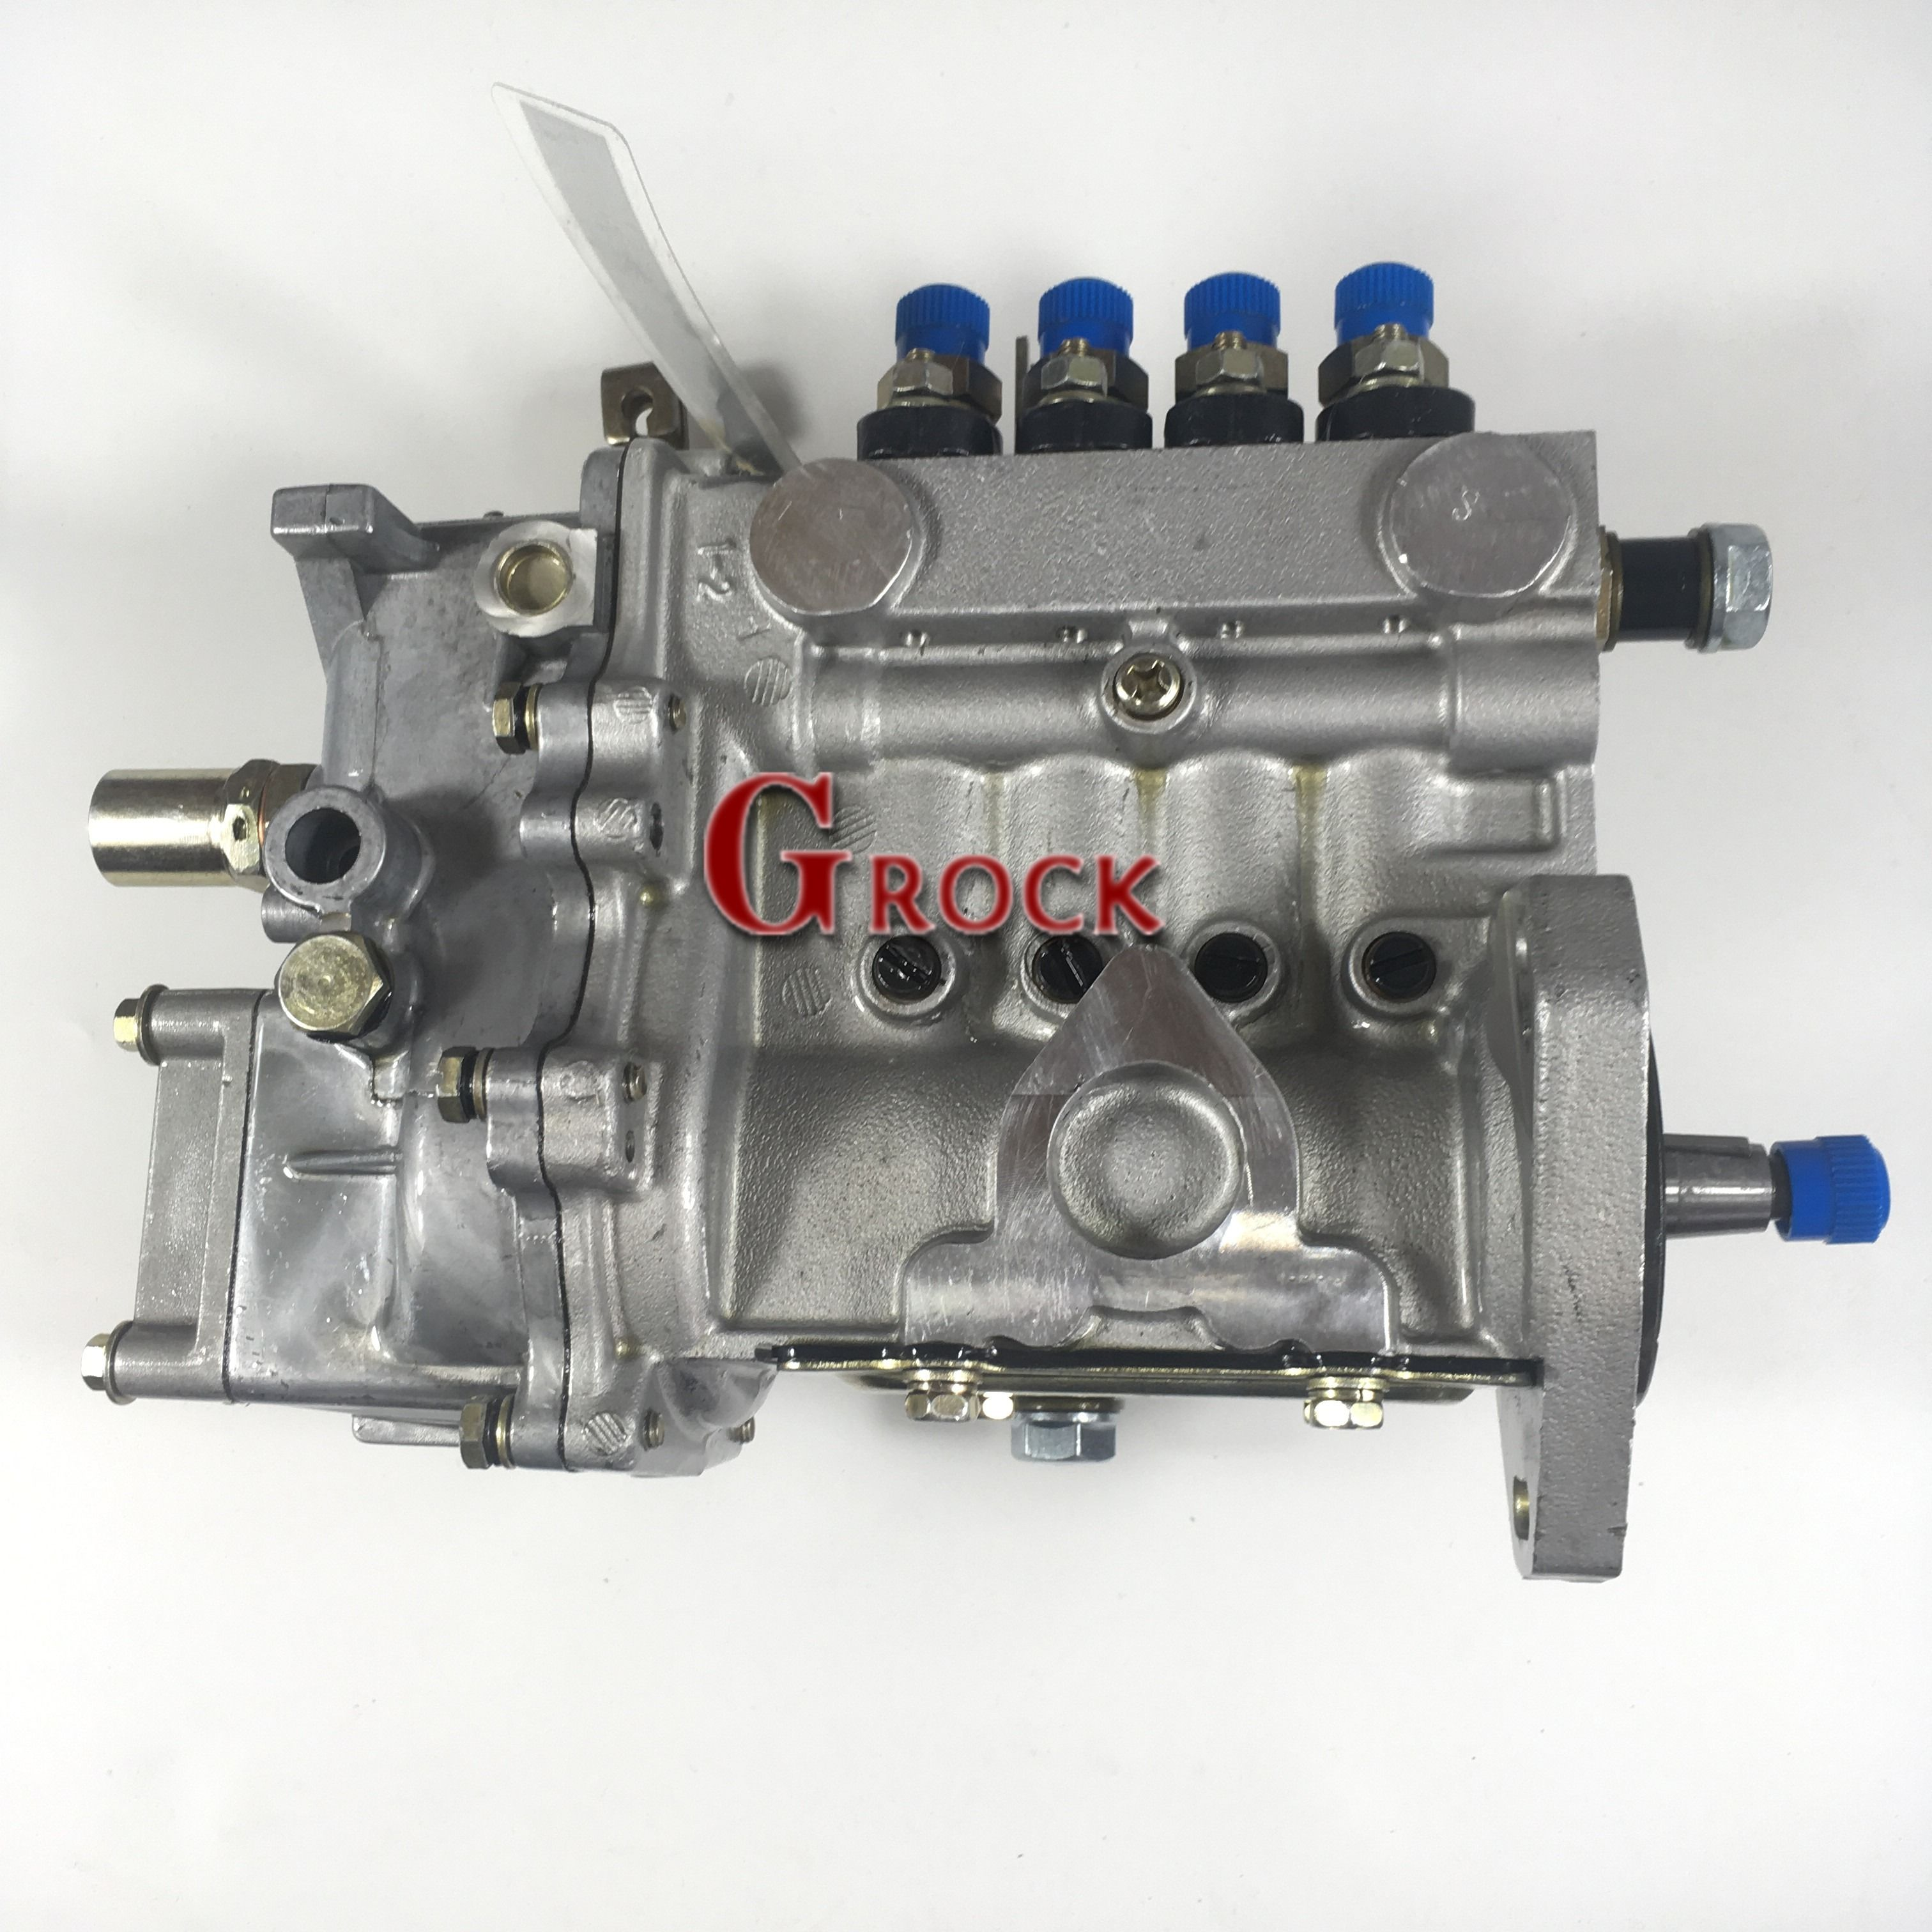 Bh4q75r8 Injection Pump Injections Pumps Diesel